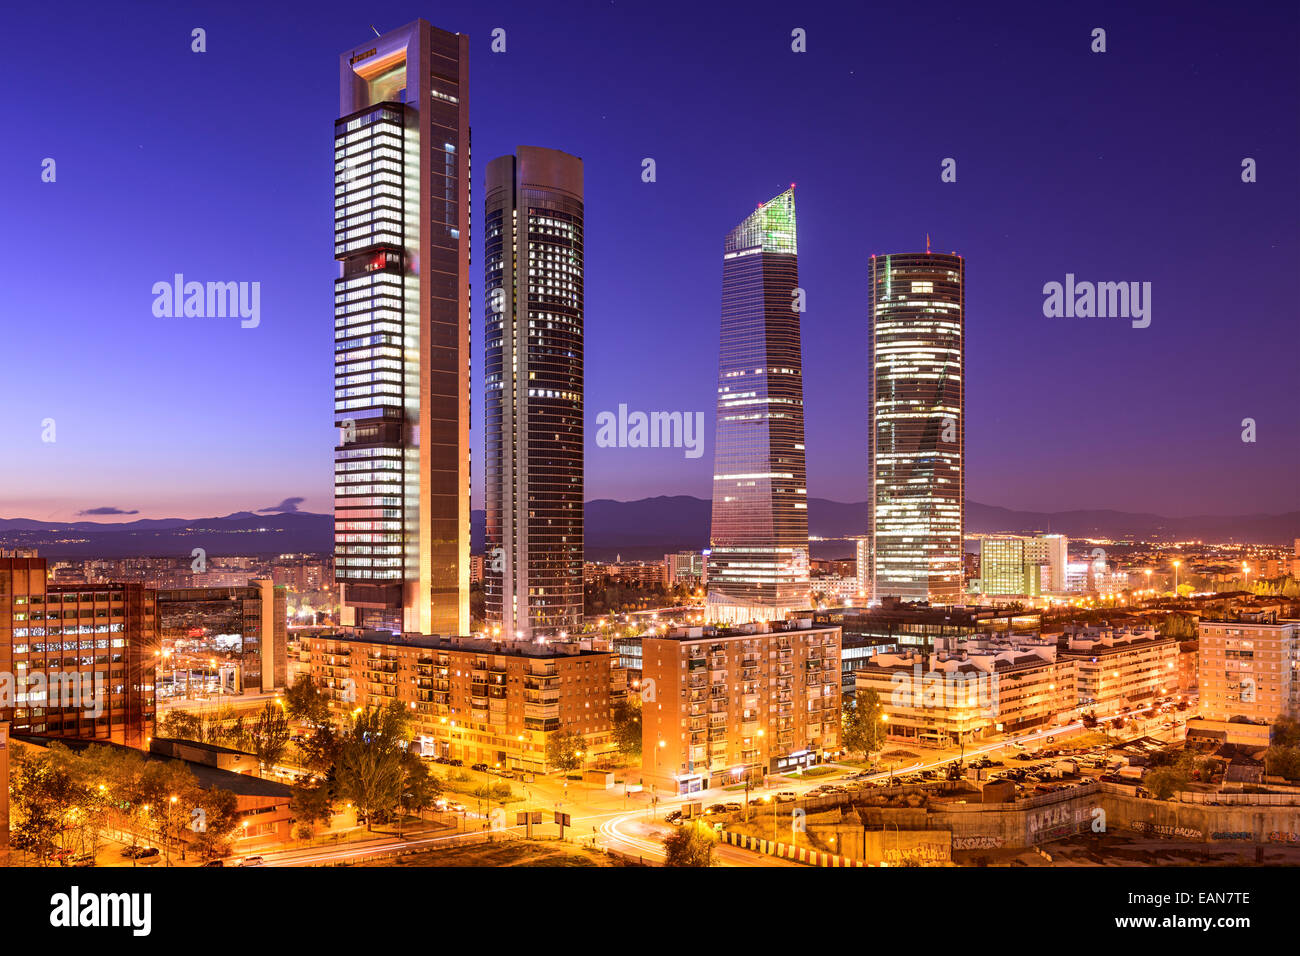 Madrid, Spain financial district skyline at twilight. - Stock Image